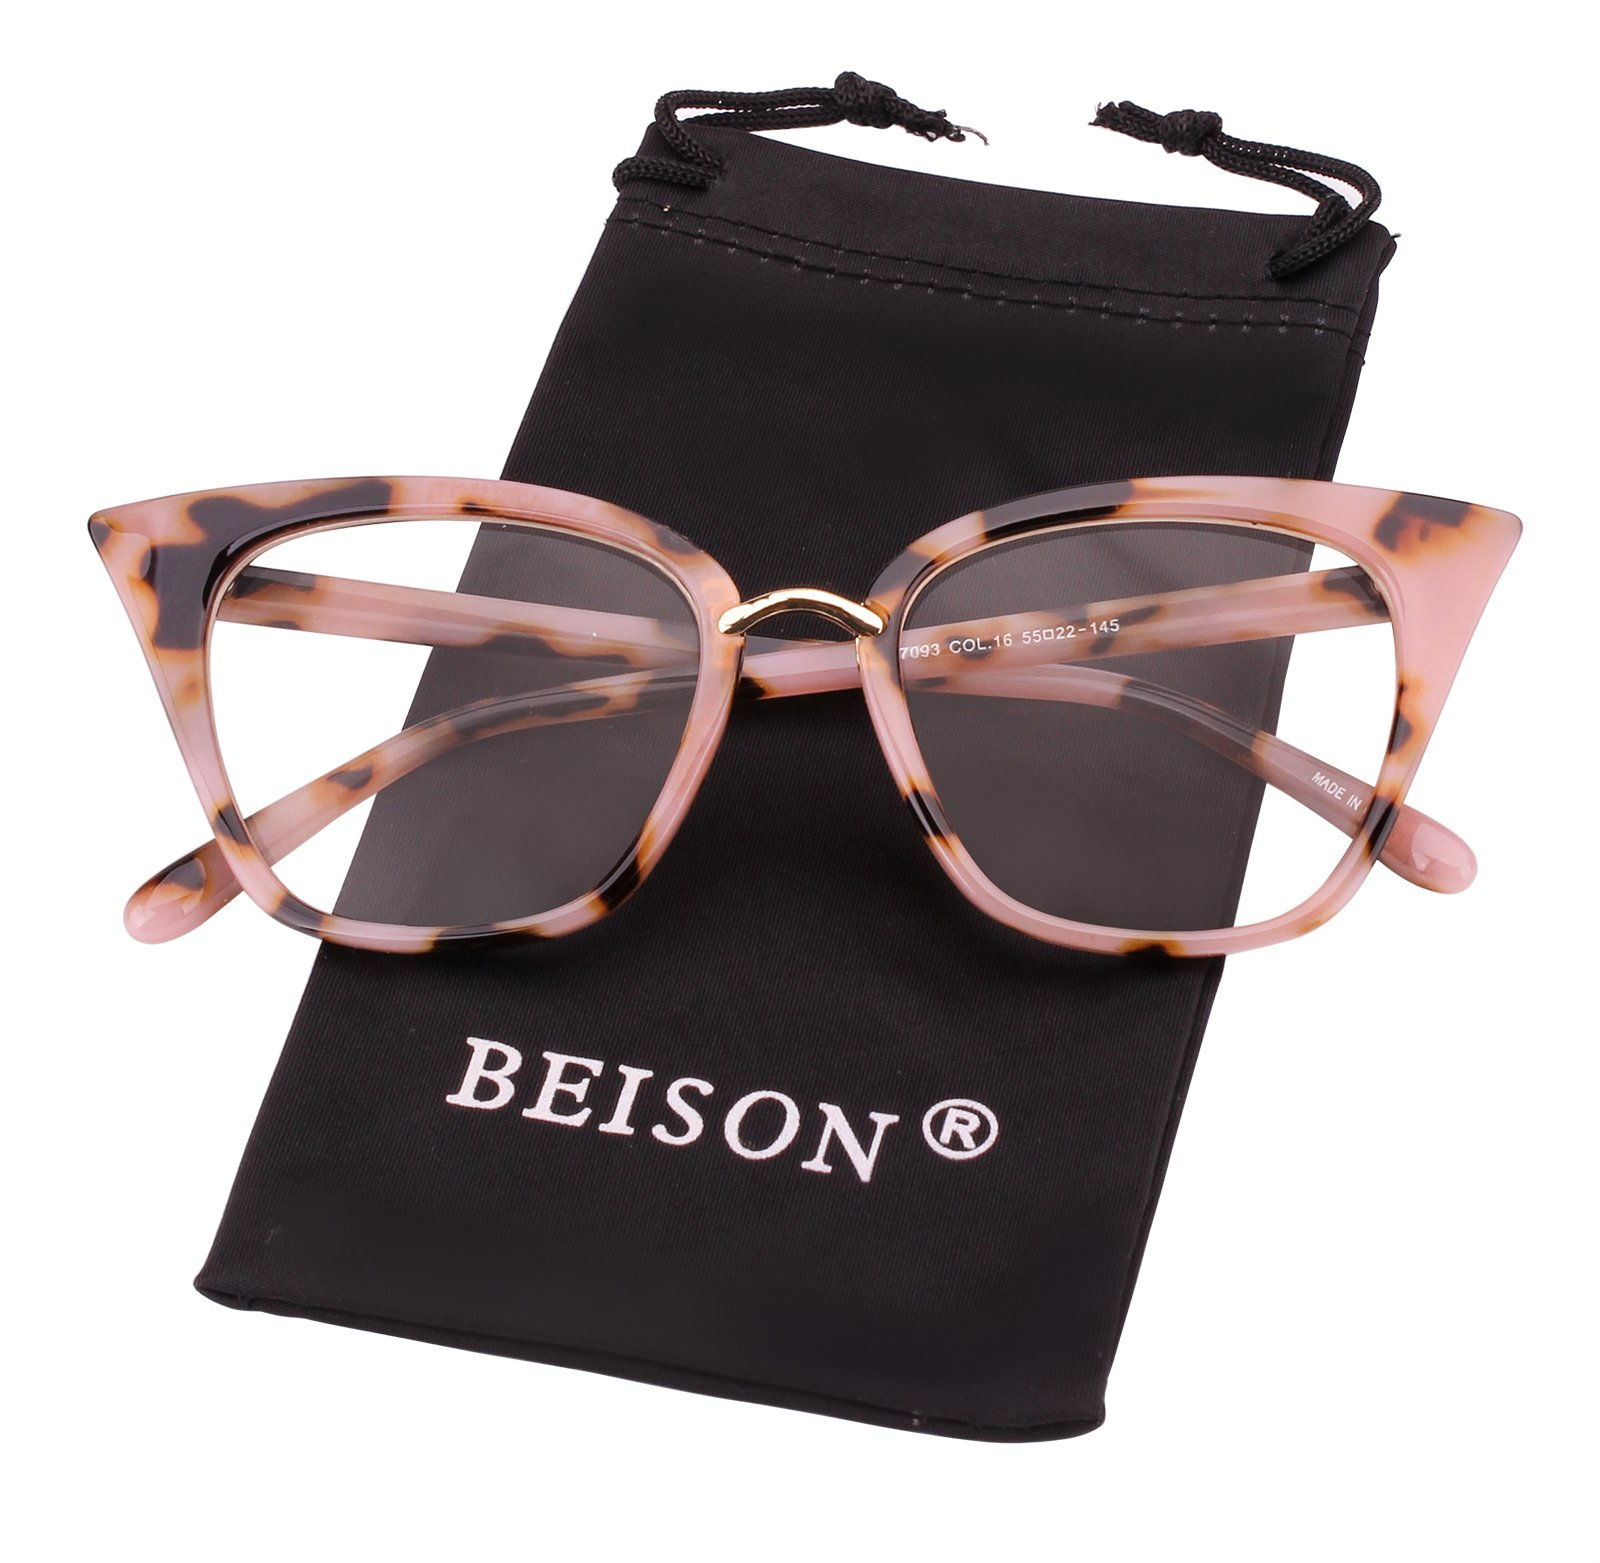 Beison Womens Cat Eye Mod Fashion Eyeglasses Frame Clear Lens by Beison